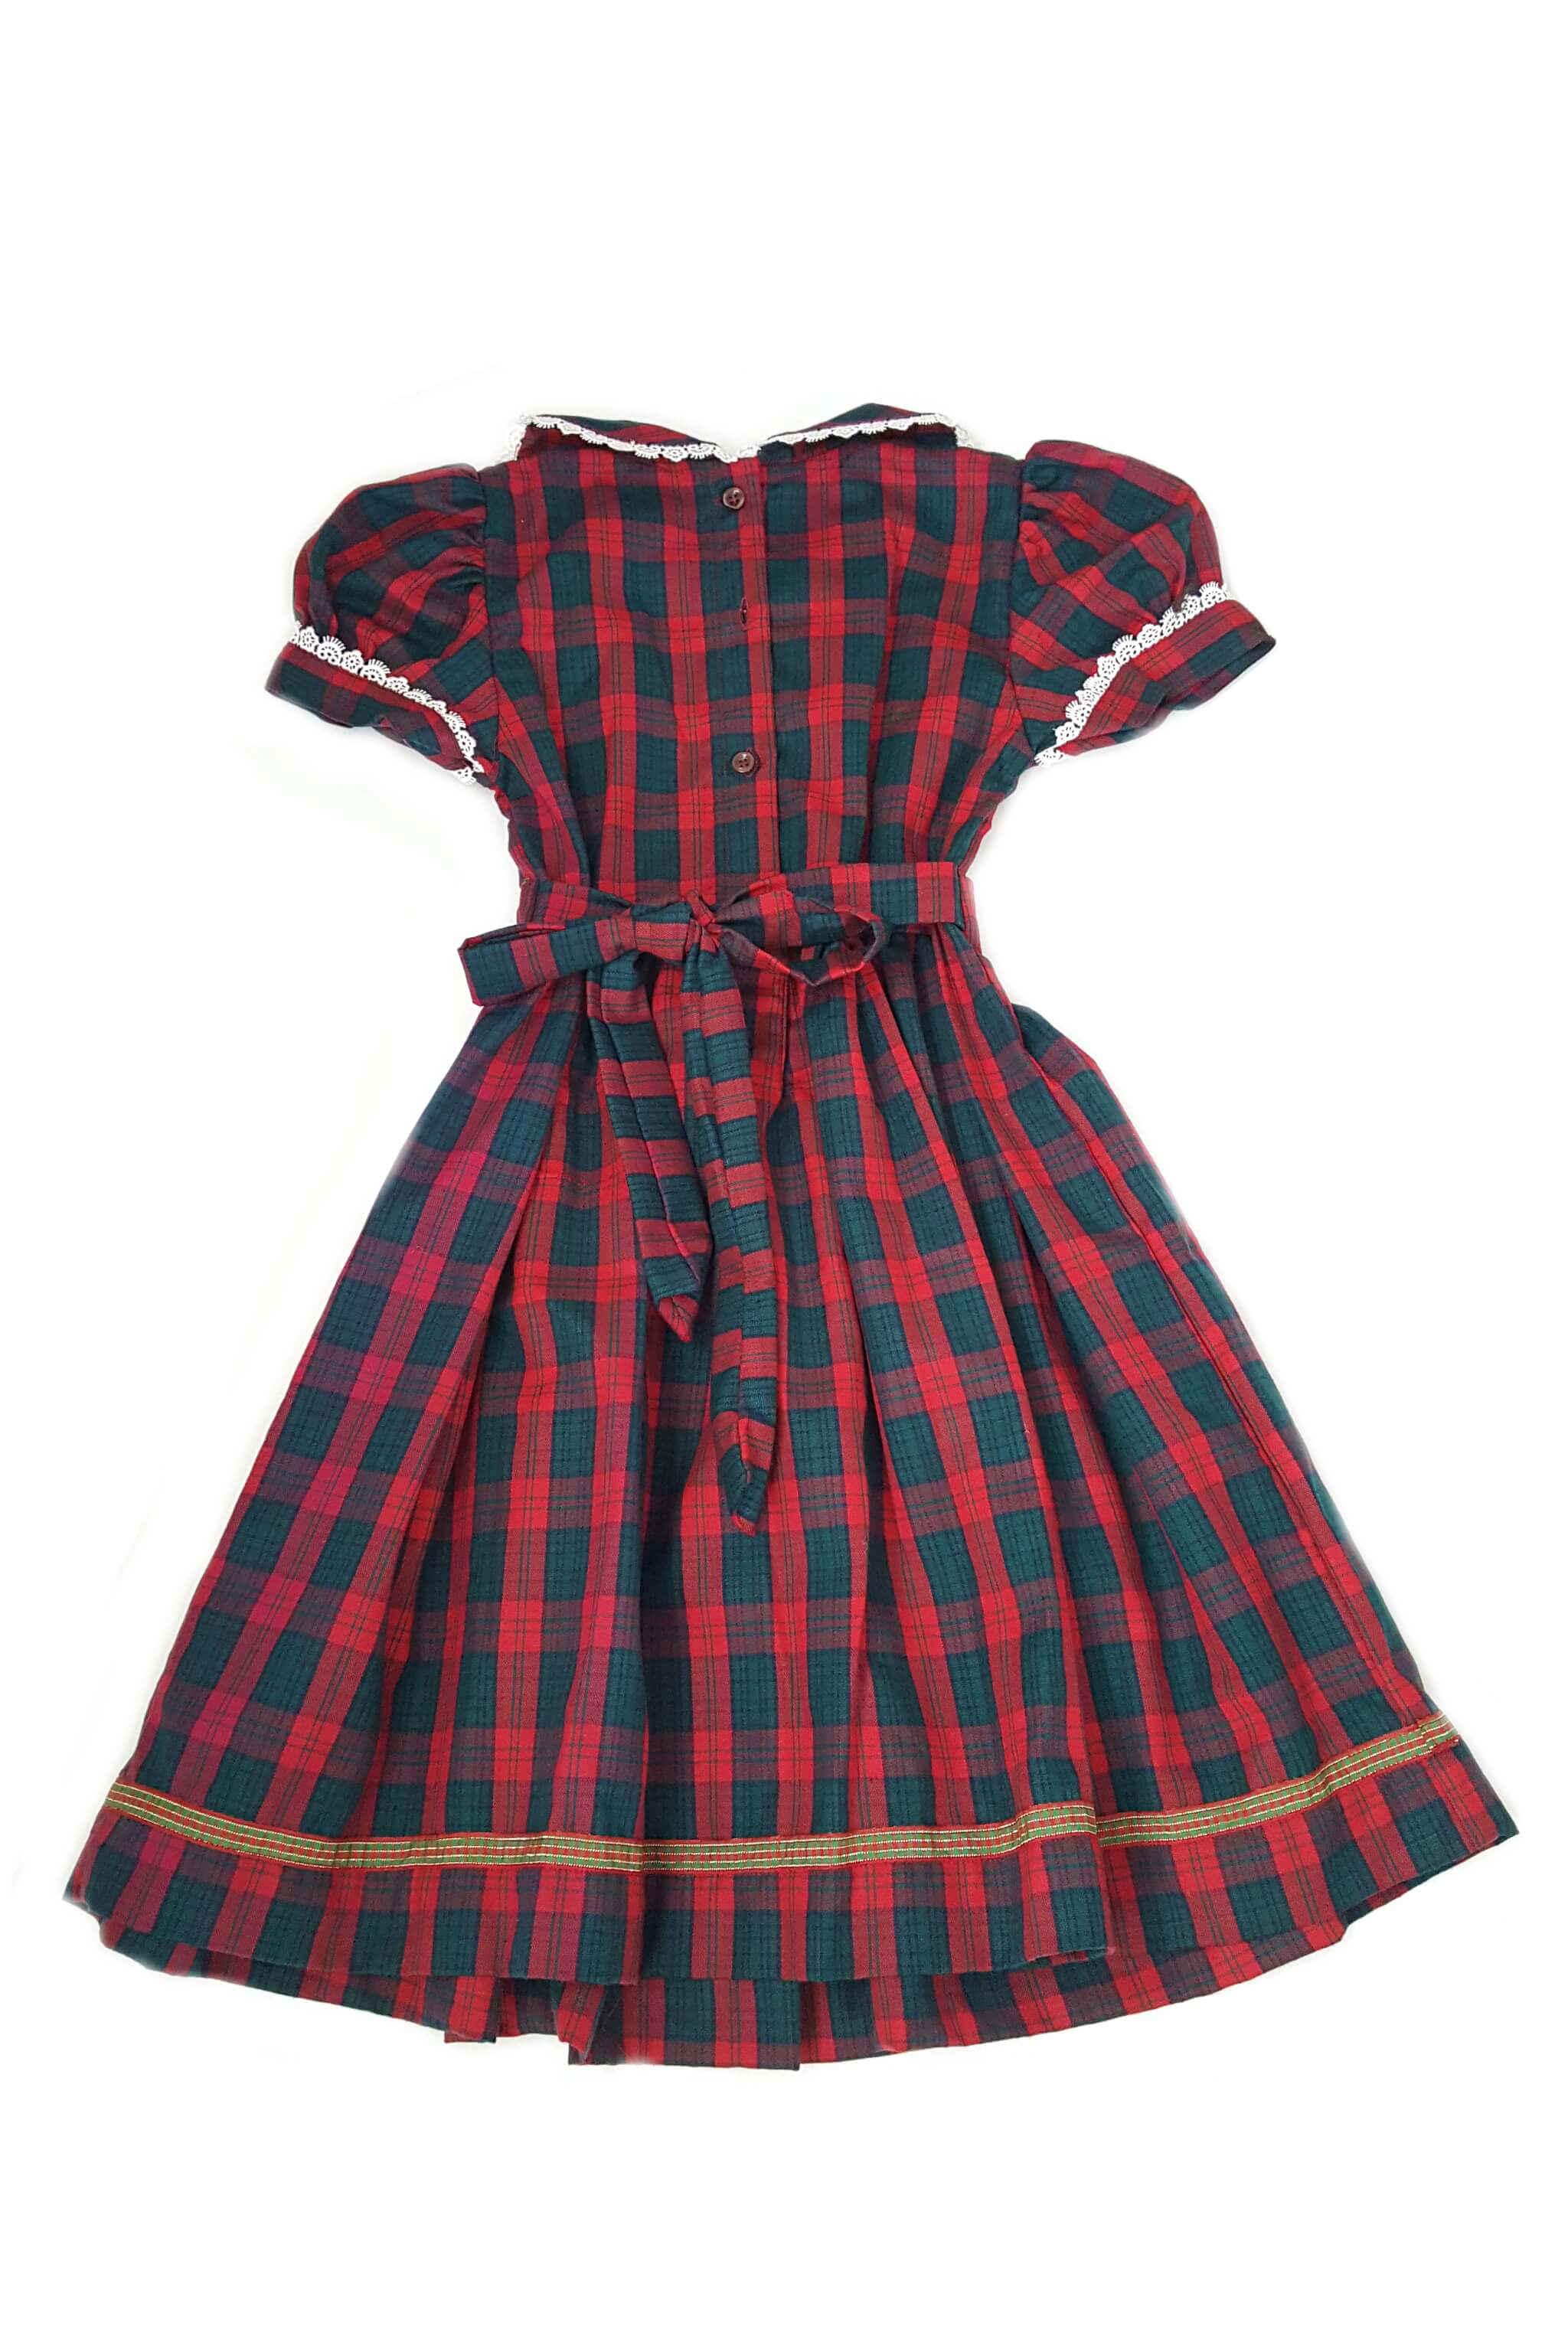 Tartan red and green smocked dress with button back opening and a tartan sash for 5-6 year, 9-10 and 11-12 year old girls